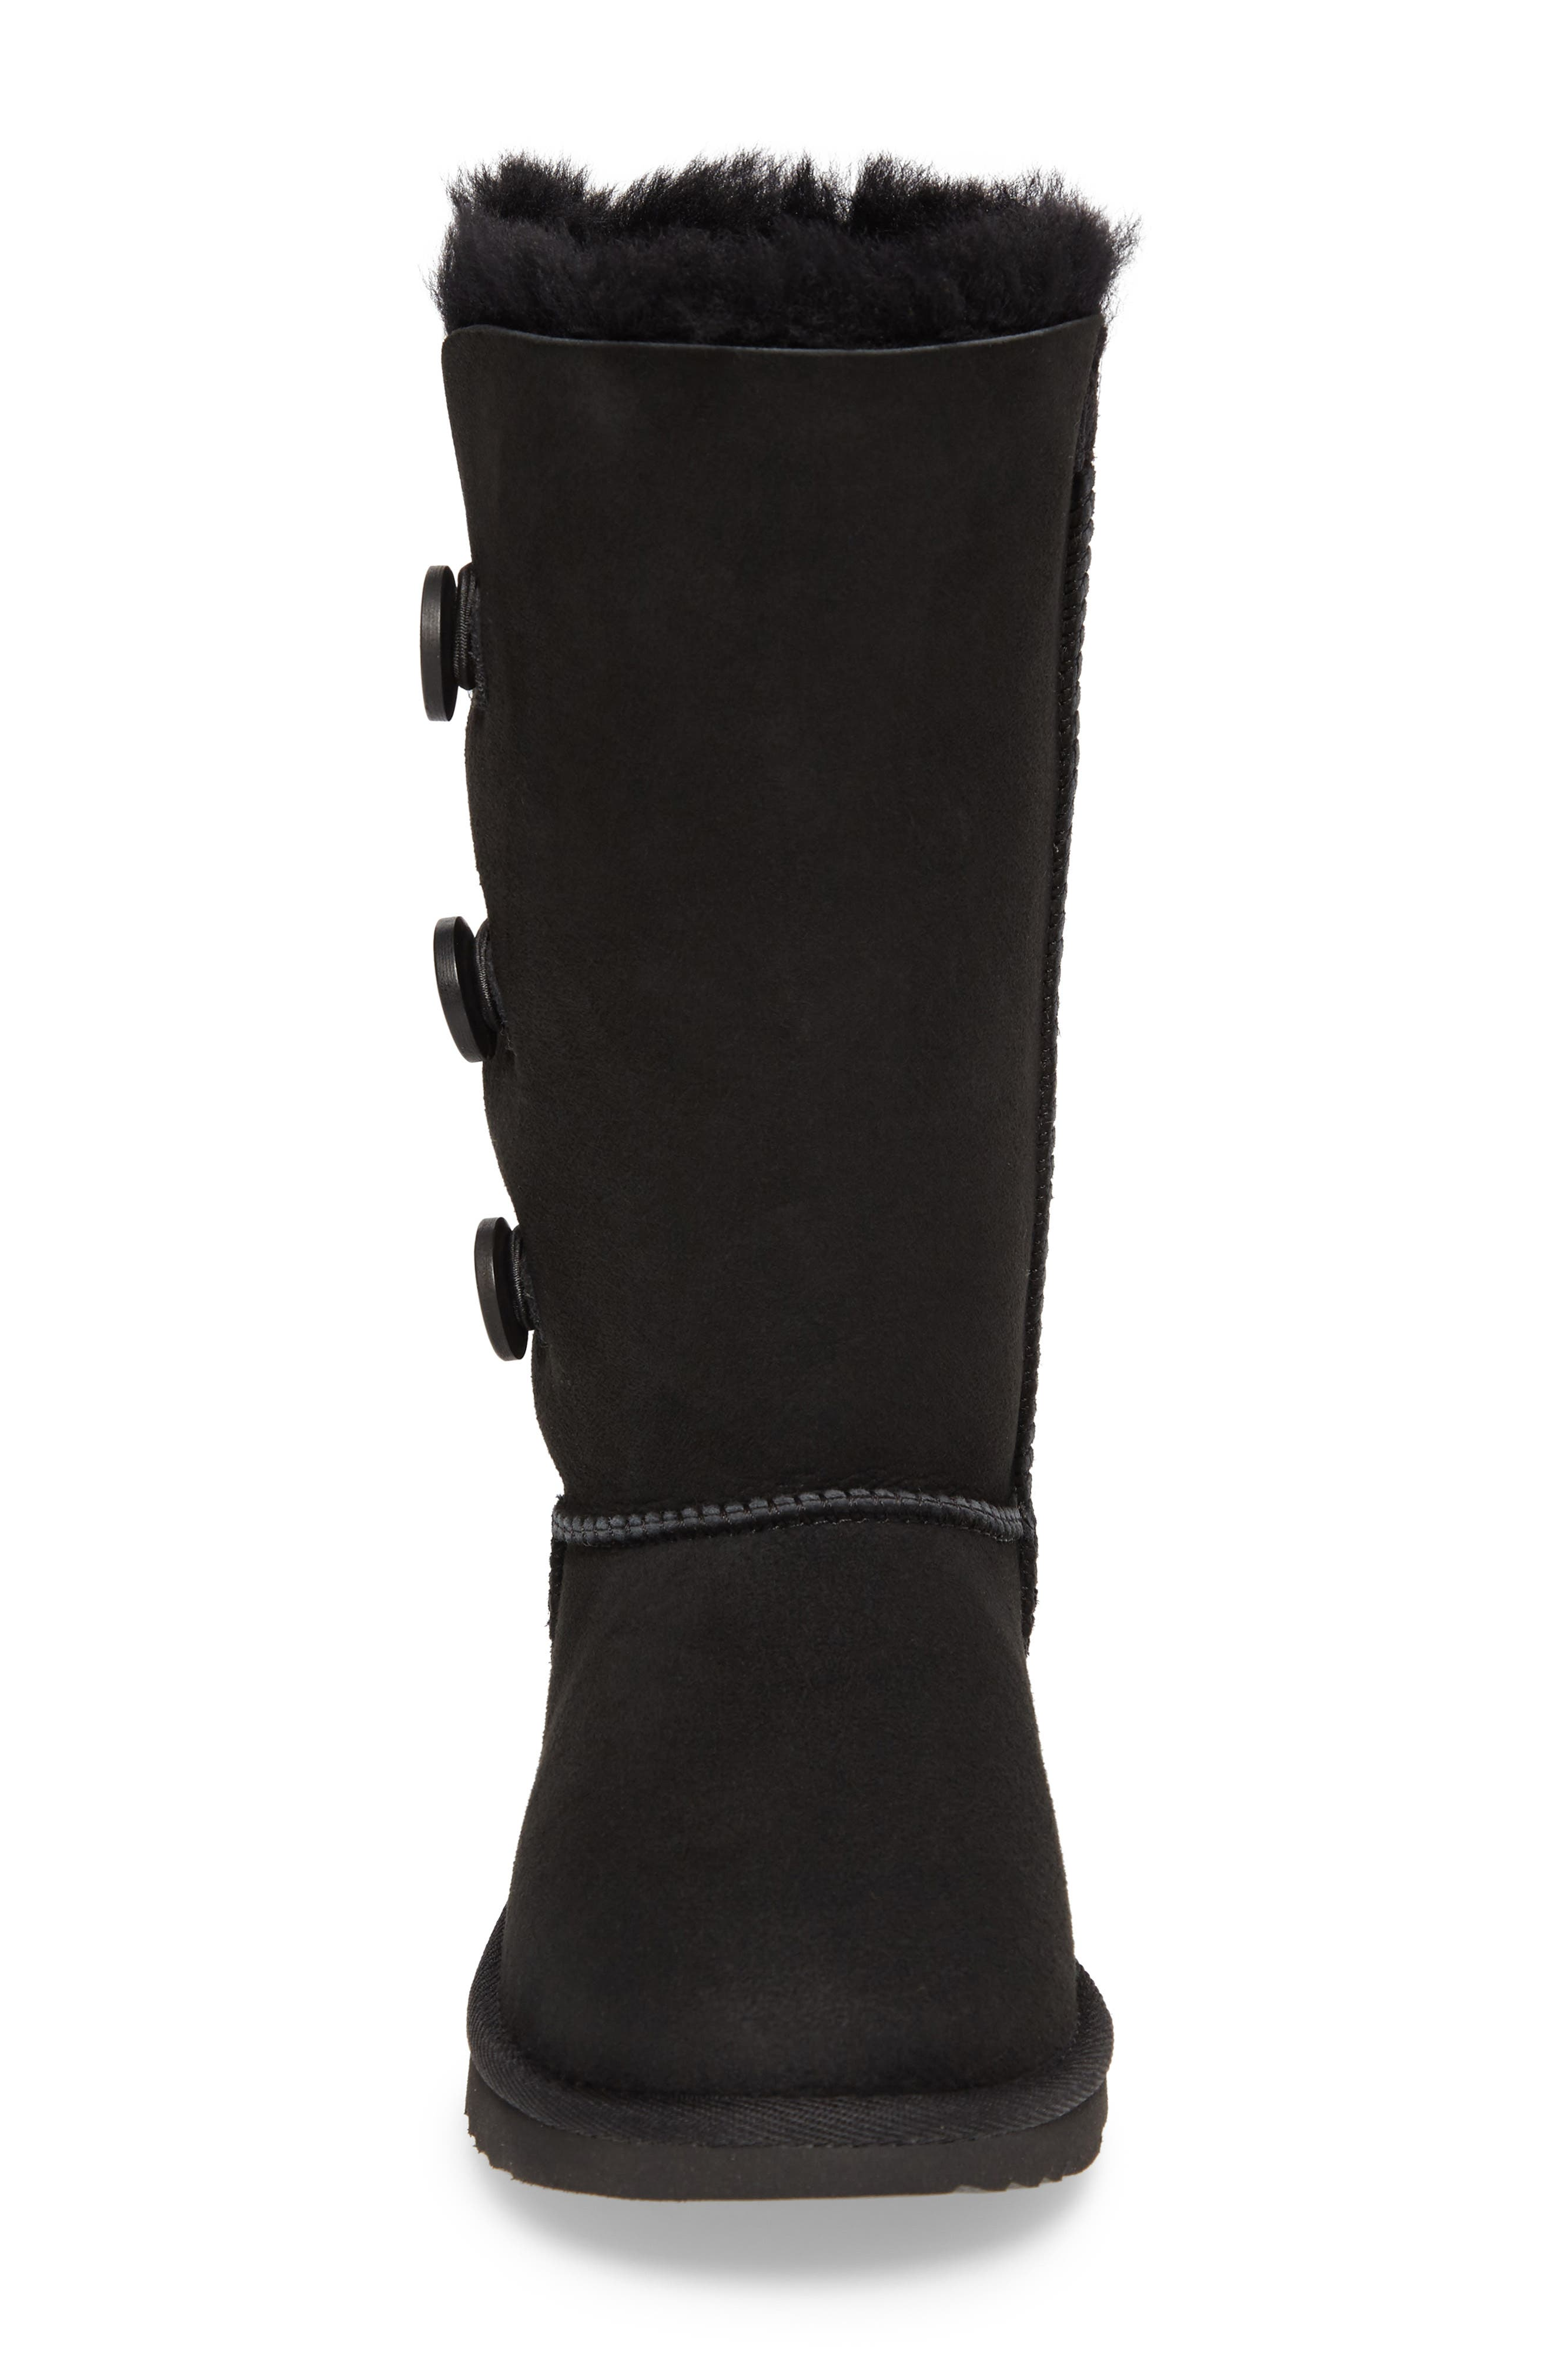 UGG<SUP>®</SUP>, Bailey Button Triplet II Genuine Shearling Boot, Alternate thumbnail 4, color, BLACK SUEDE